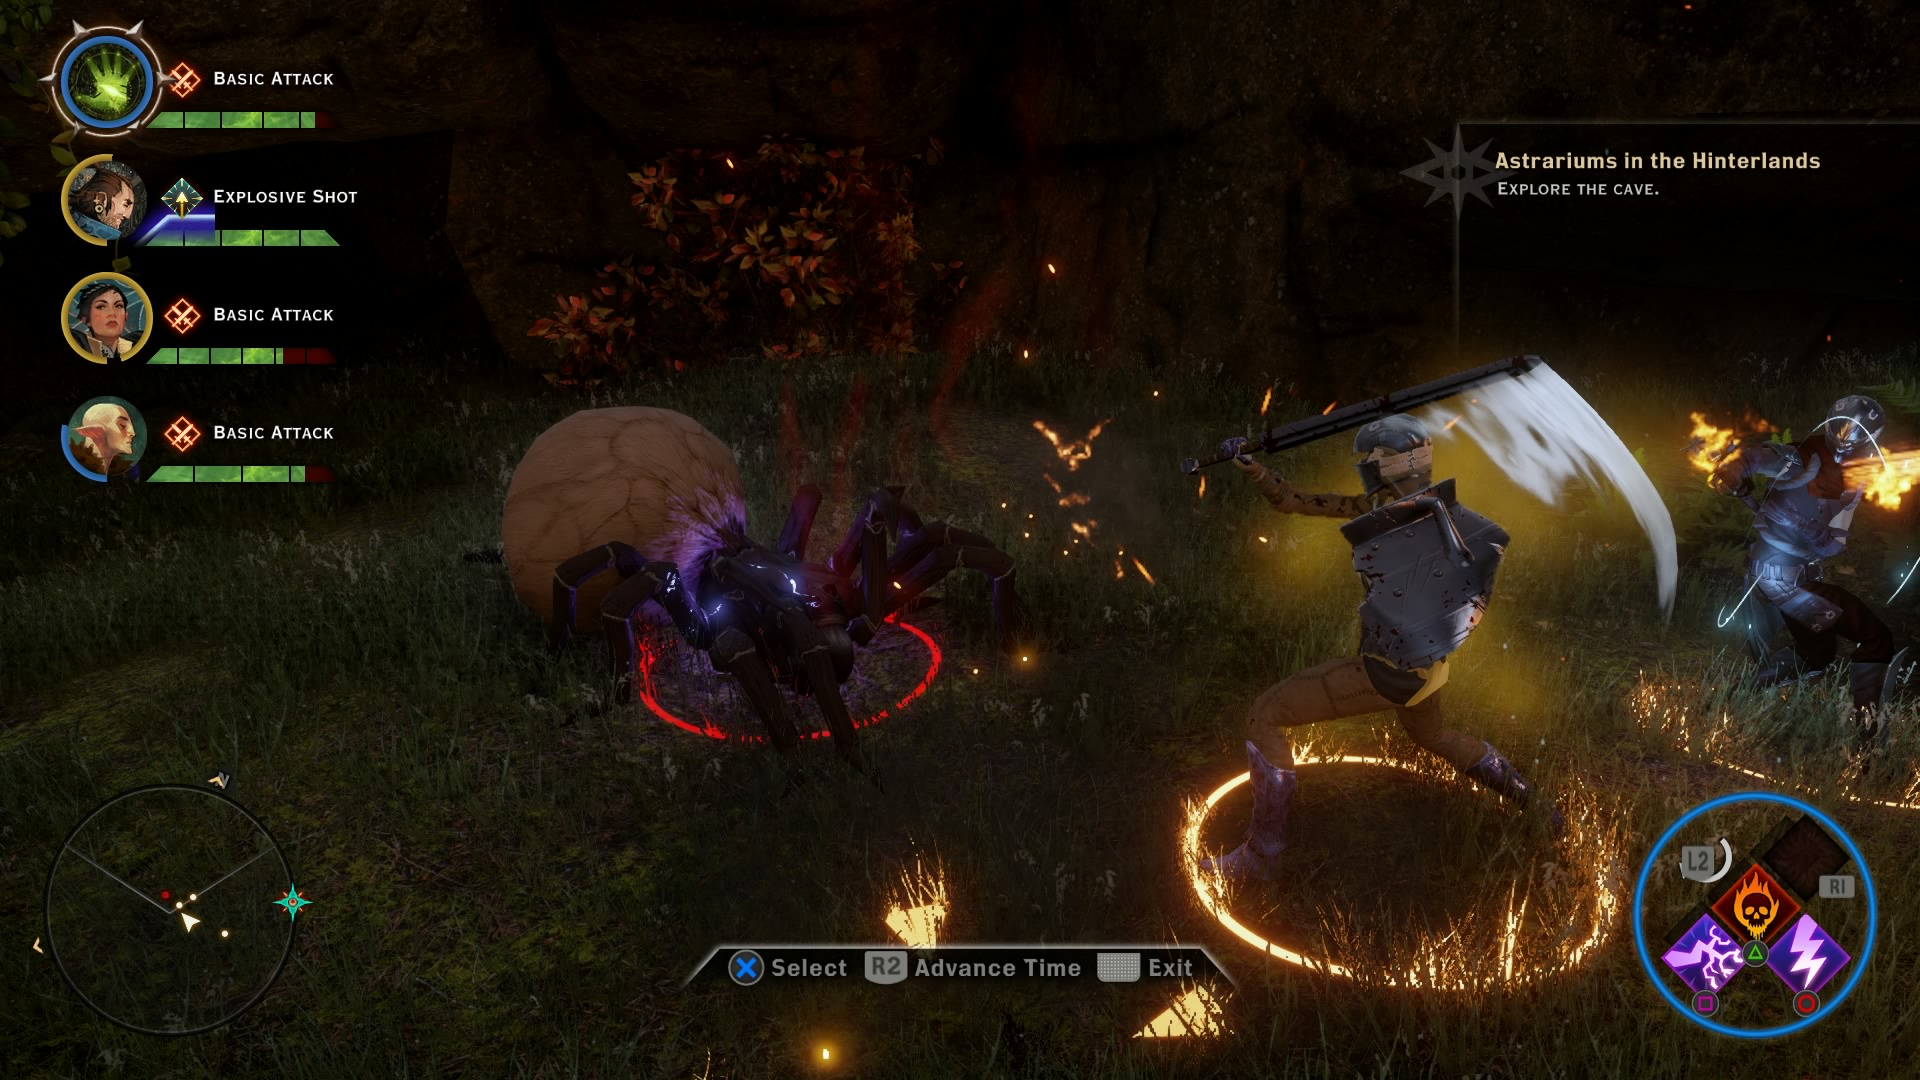 Players Can Use Numerous Skills and Spells on Enemies